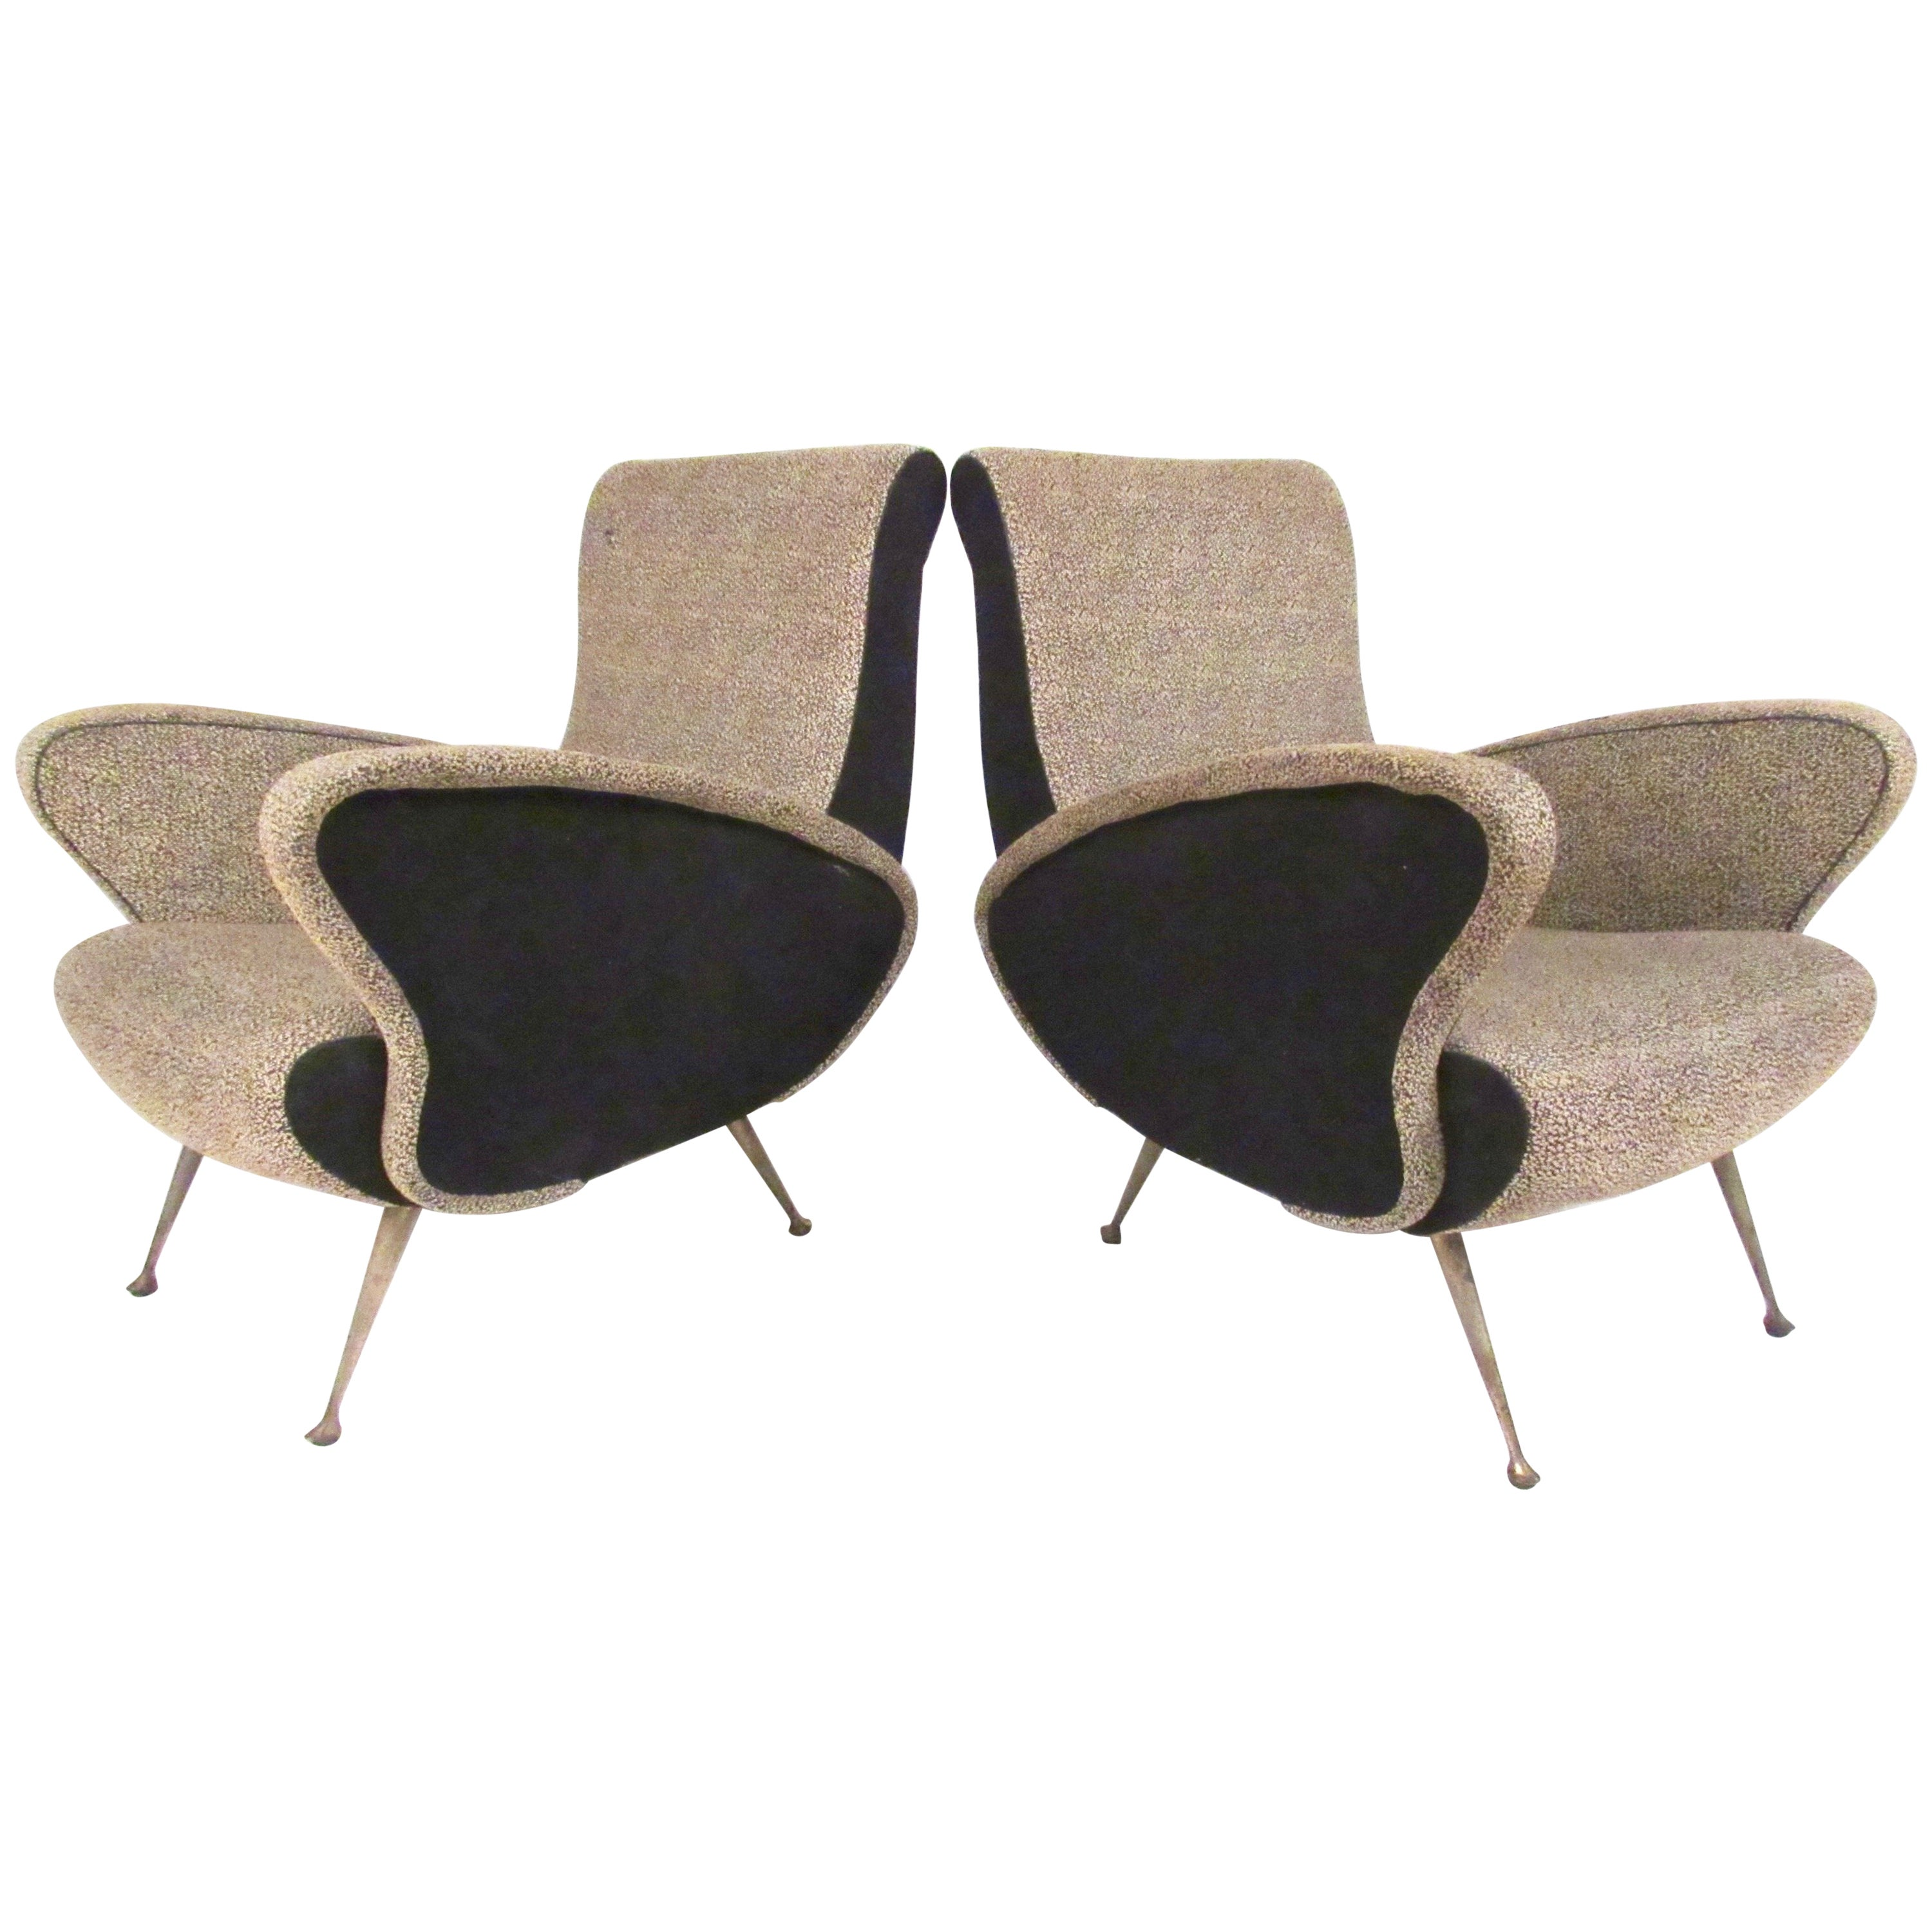 Pair of Italian Modern Sculptural Lounge Chairs